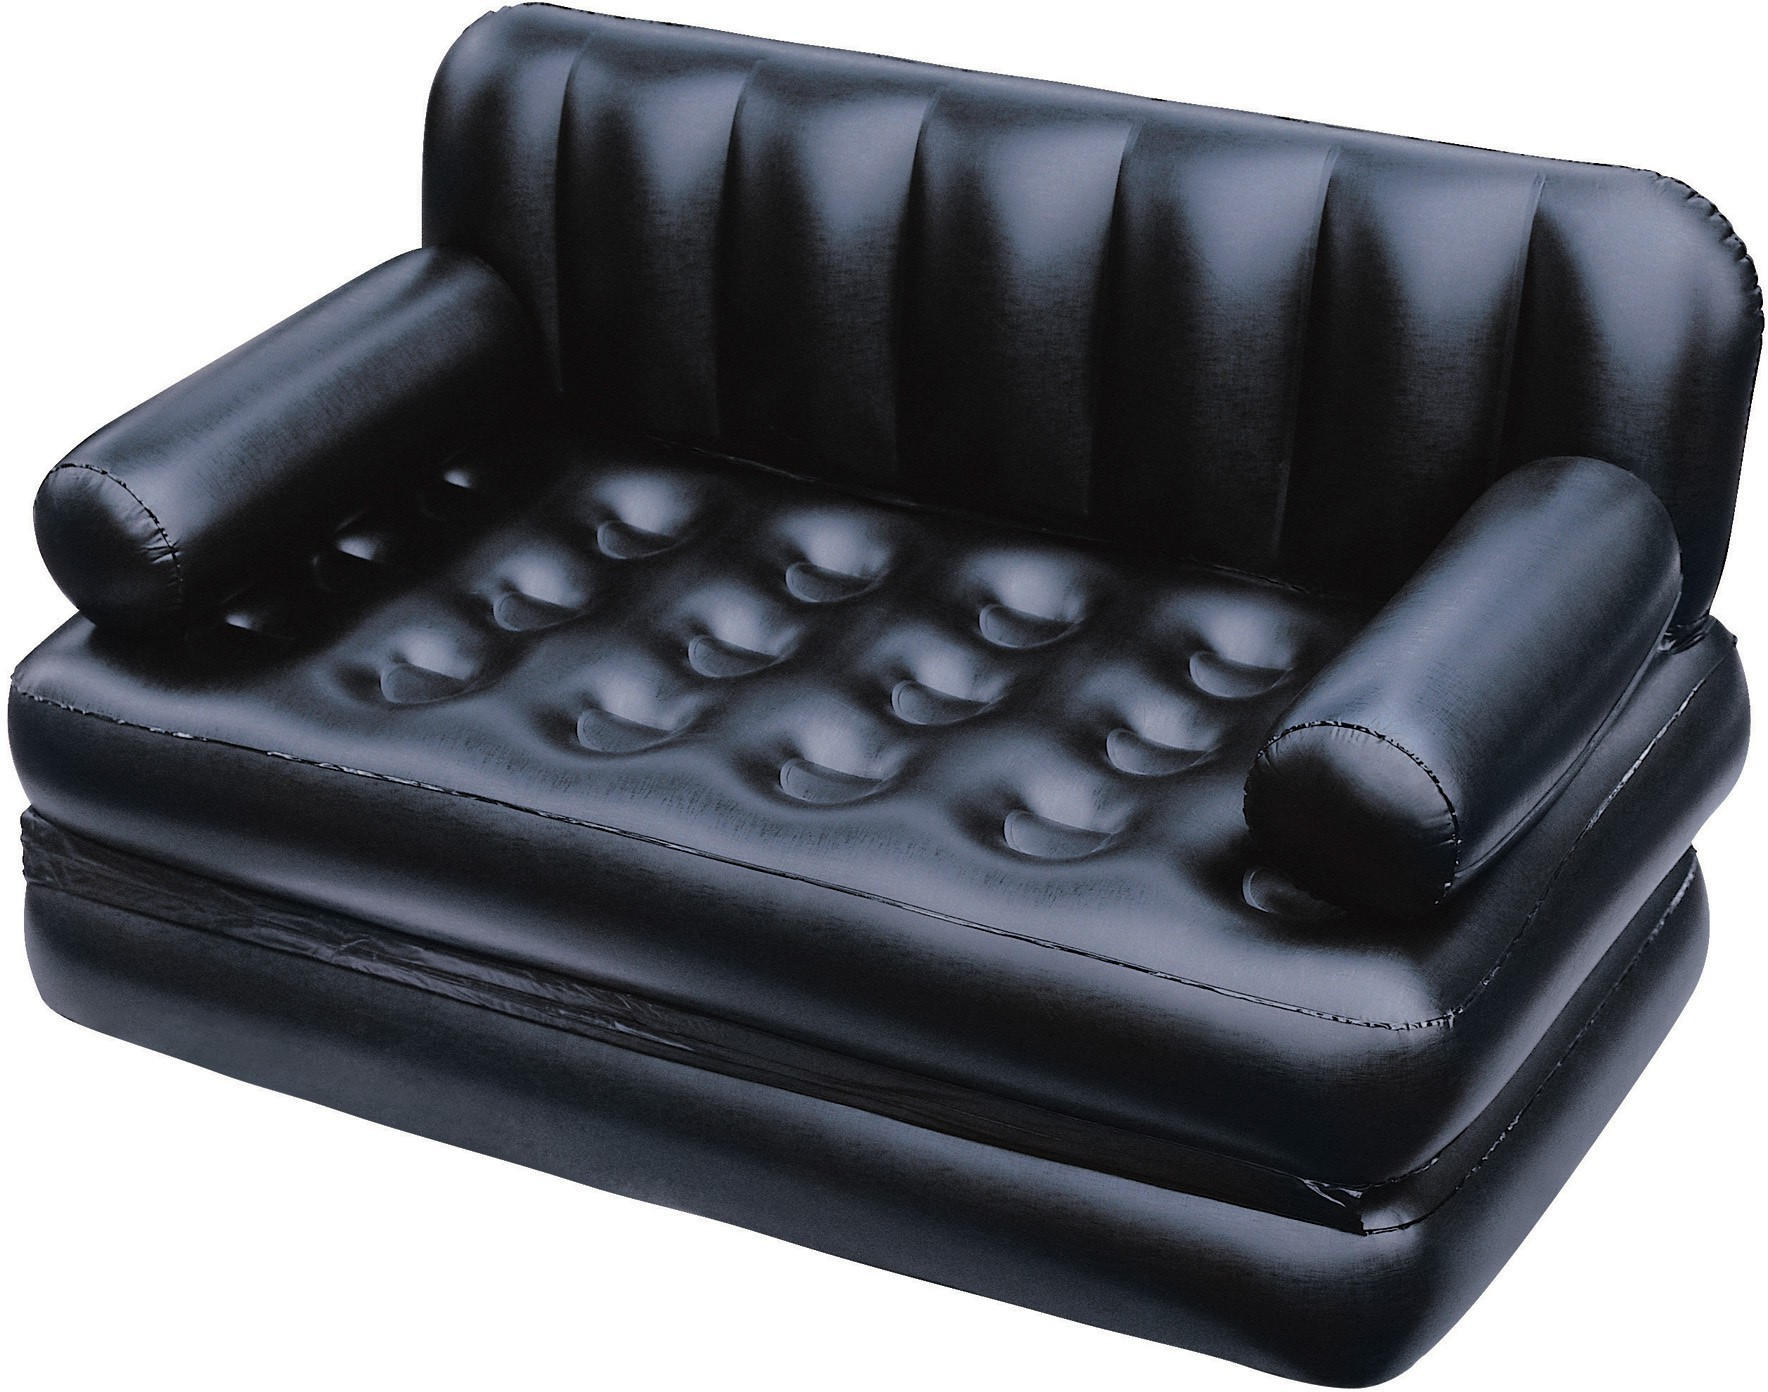 View Khareedi 75056 PVC 3 Seater Inflatable Sofa(Color - Black) Furniture (Khareedi)